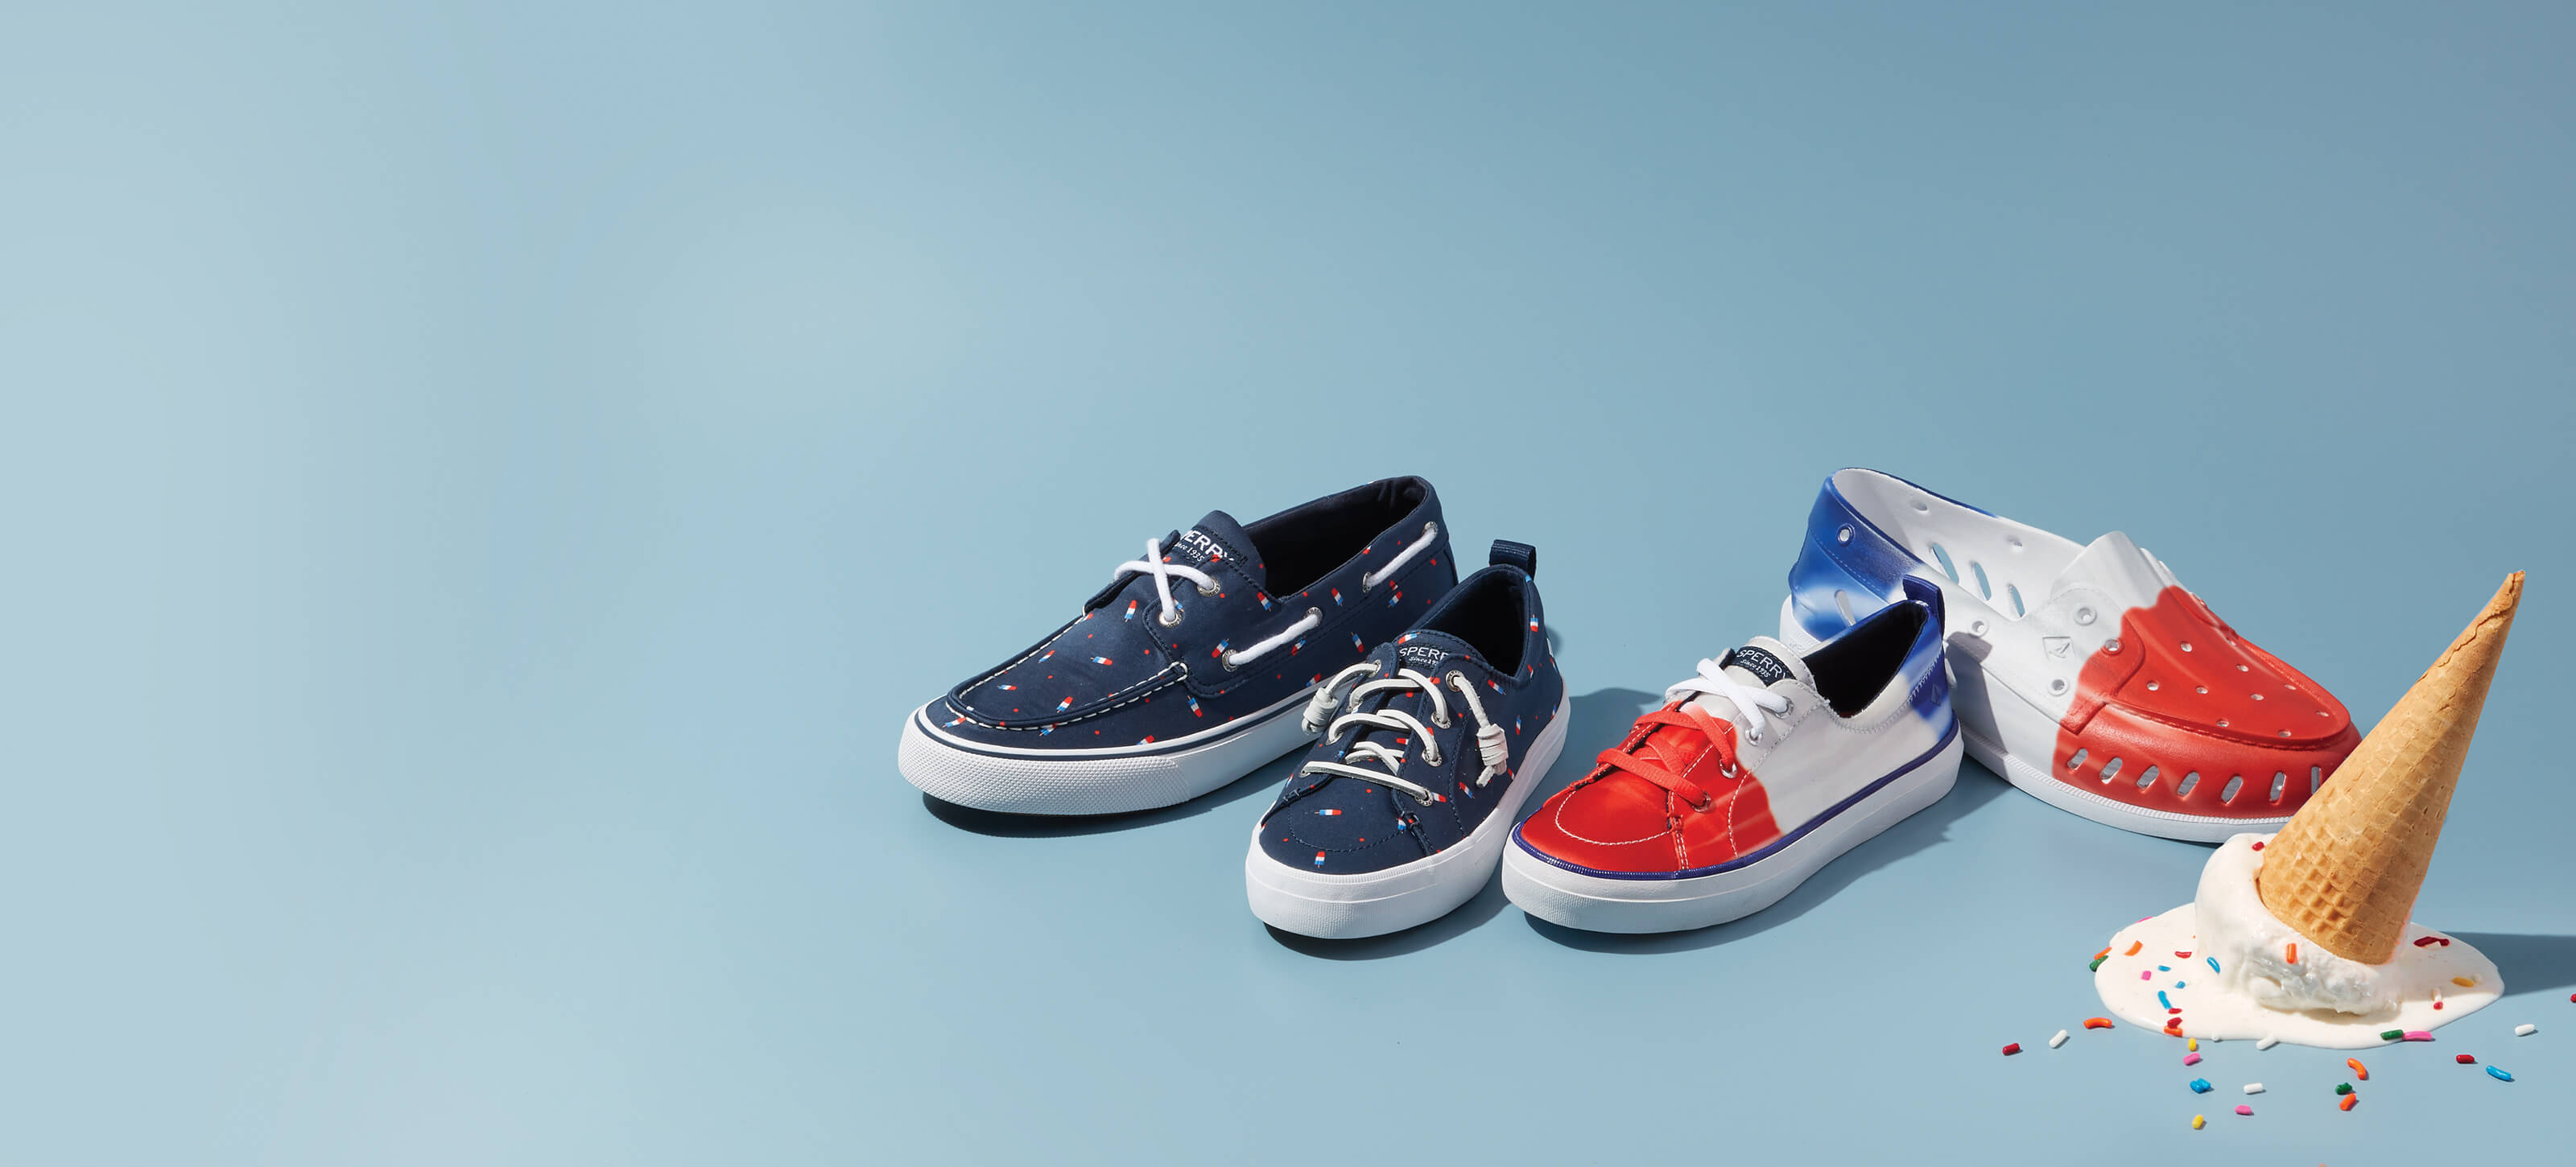 Sperry Floats and Sperry Boat Shoes in two styles based on a Firecracker beside a dropped, upside down ice cream with sprinkles.